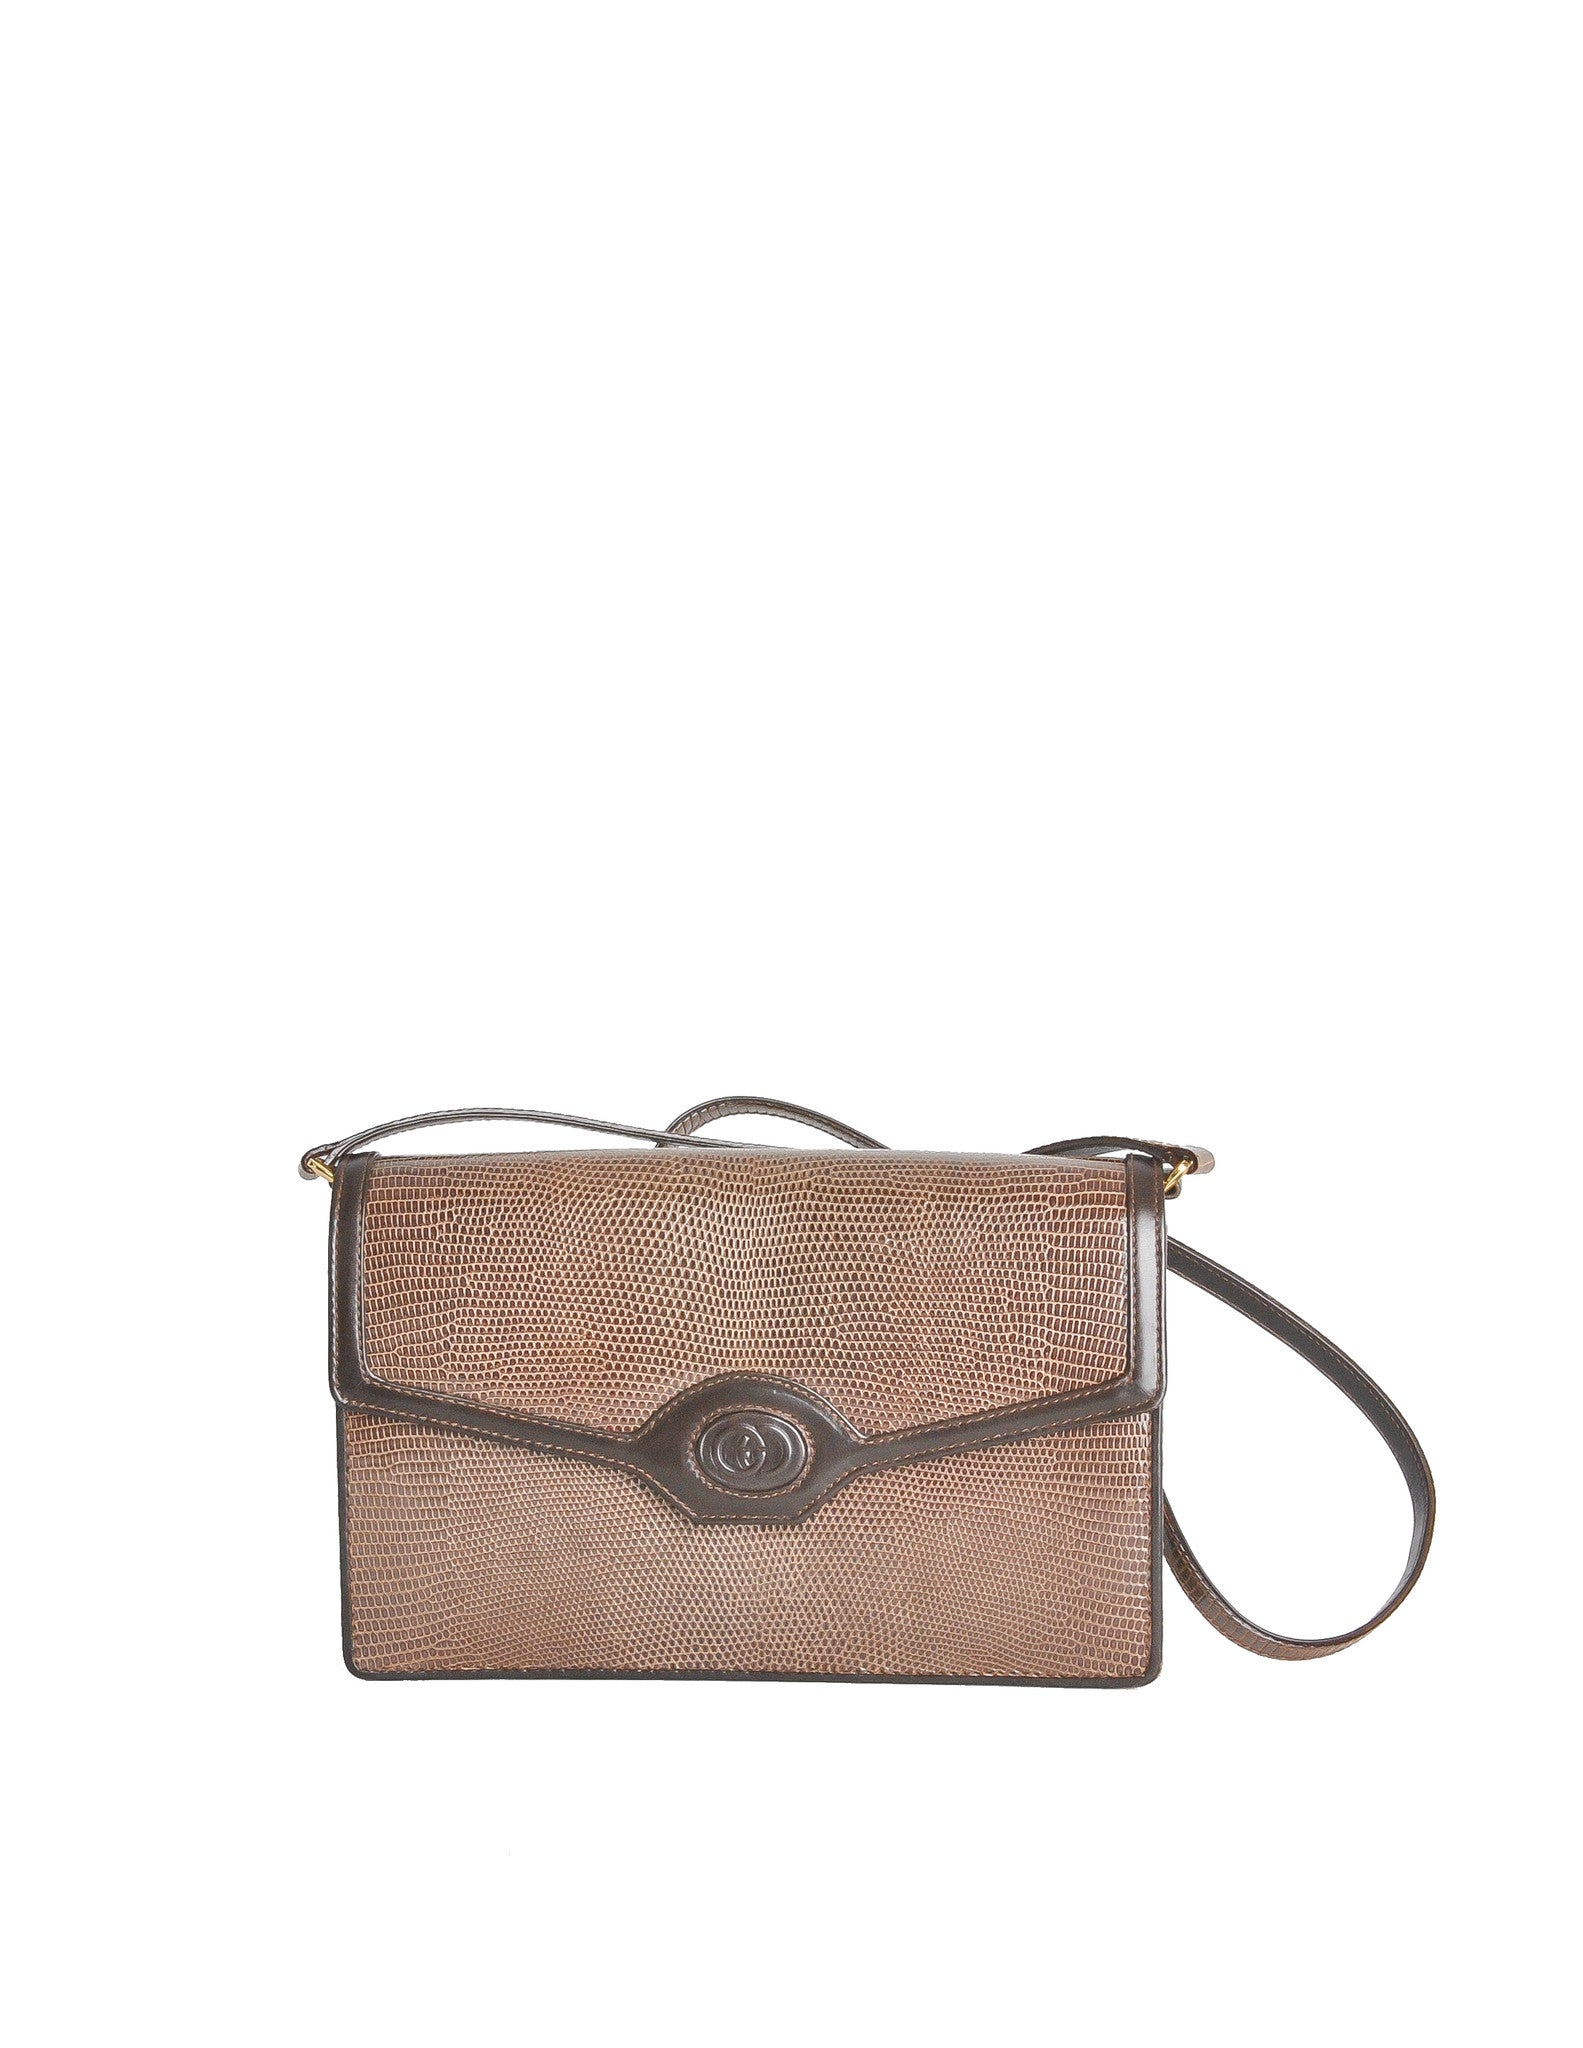 Gucci Vintage Brown Lizard Skin Clutch Bag - Amarcord Vintage Fashion  - 1